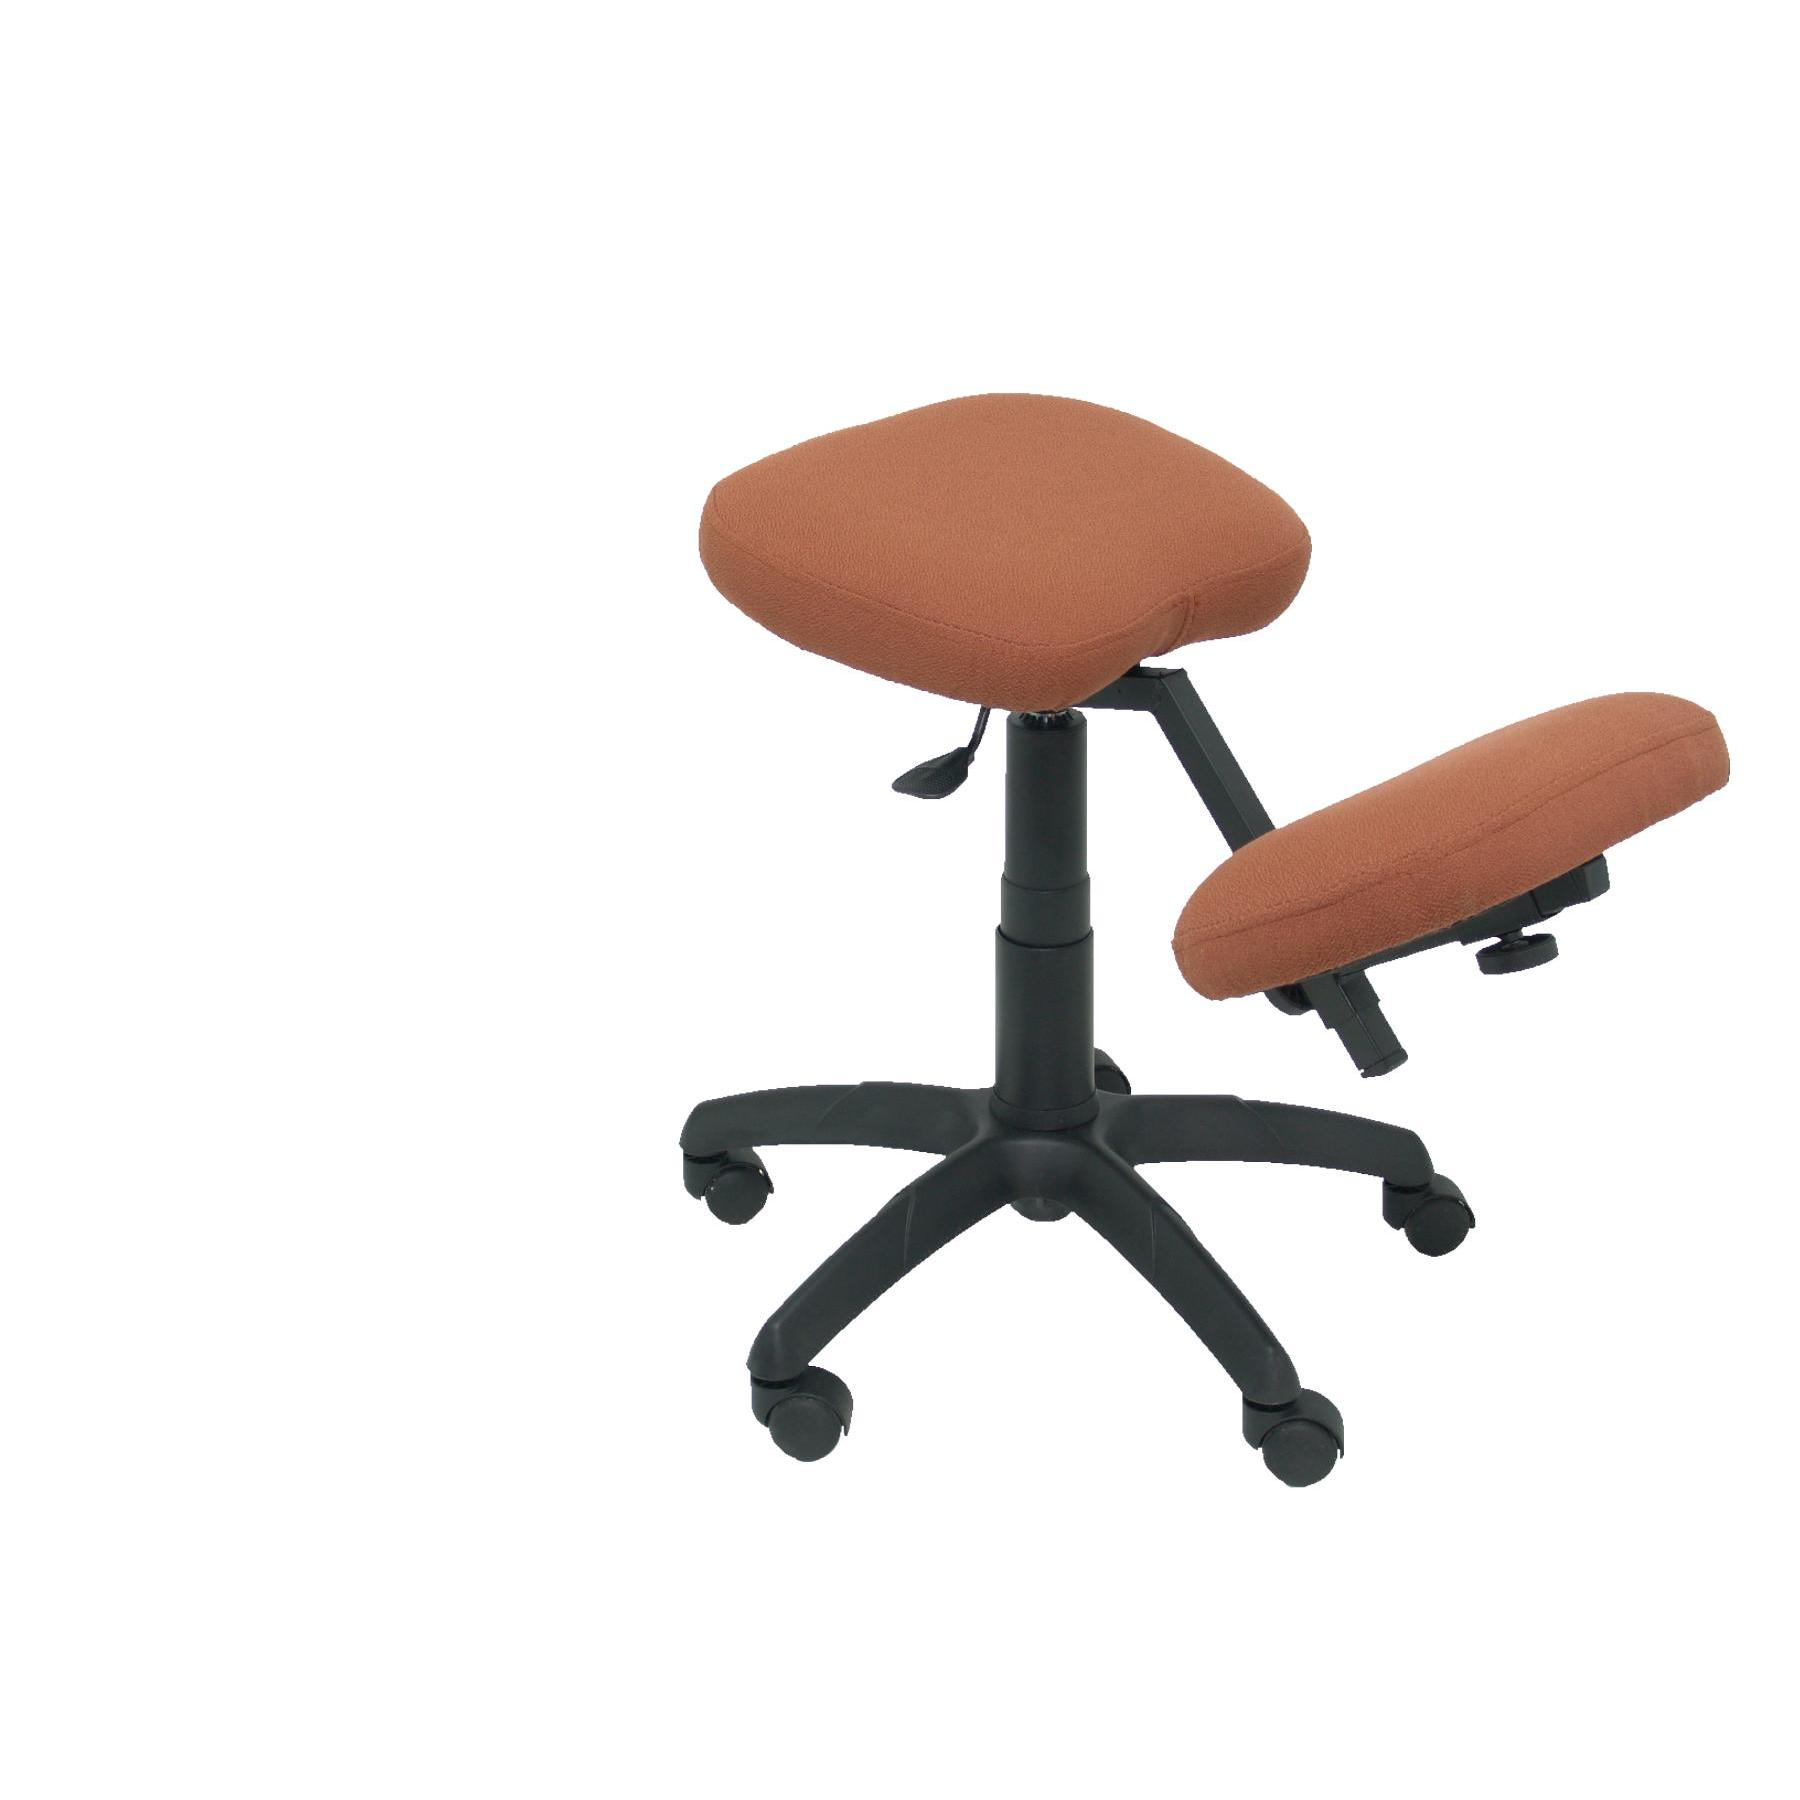 Office's Stool Ergonomic Swivel And Dimmable In High Altitude Up Seat Upholstered In BALI Tissue Color Brown (RODILLER